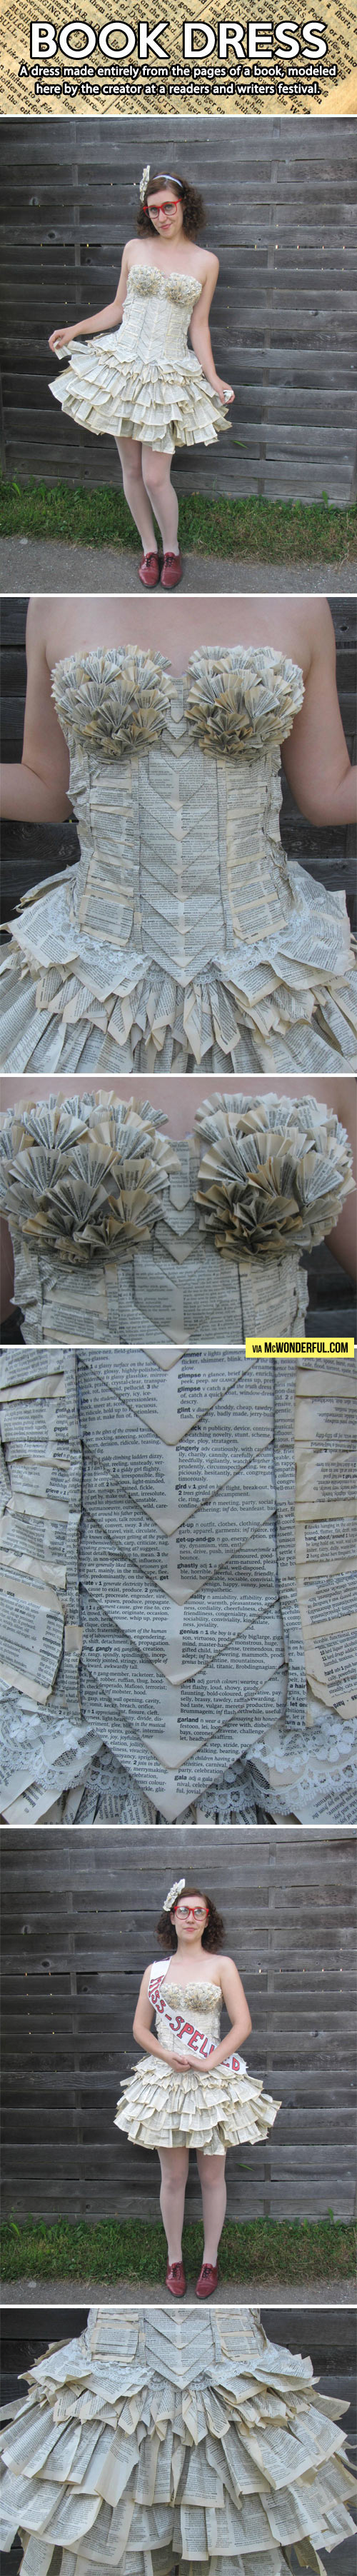 A dress made entirely out of books…